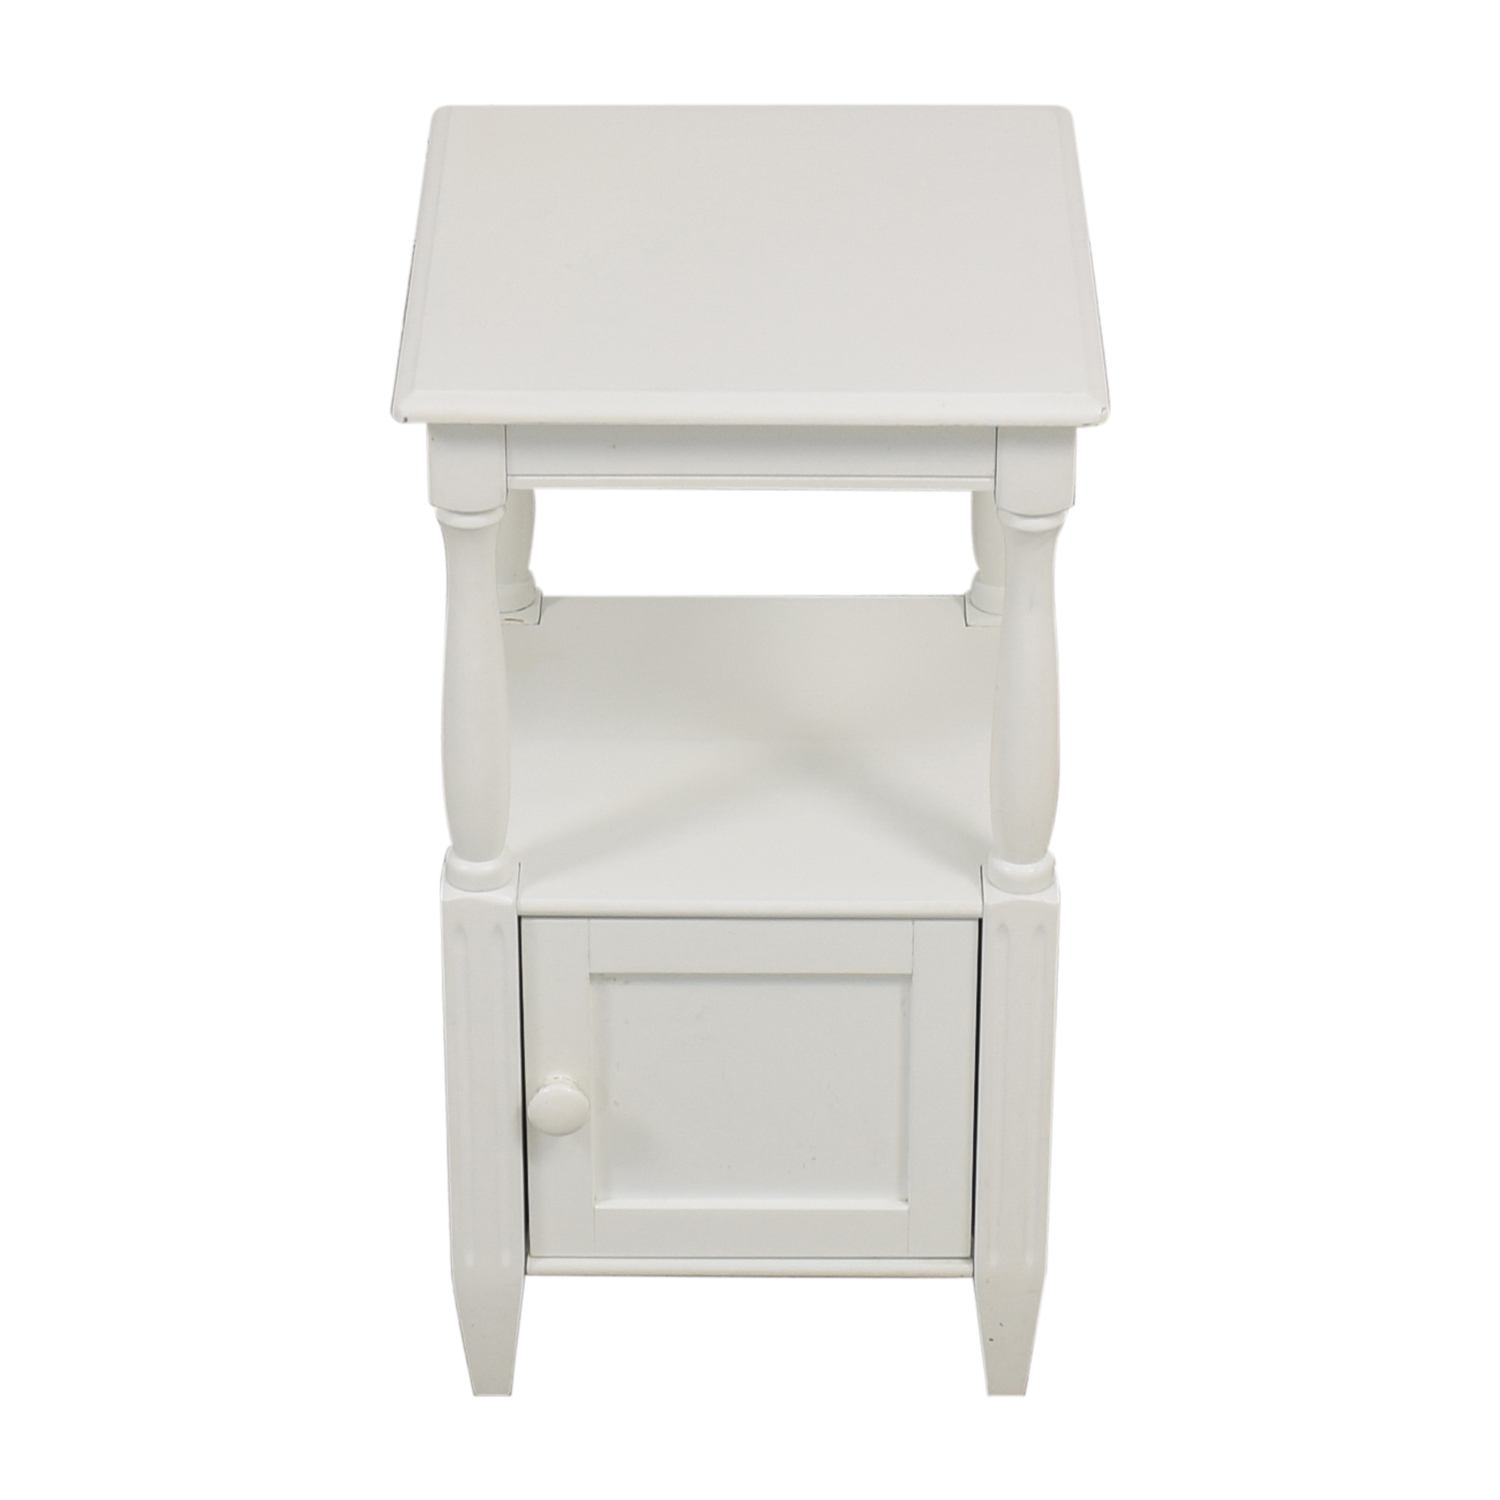 37 Off Pottery Barn Kids Night Stand Tables